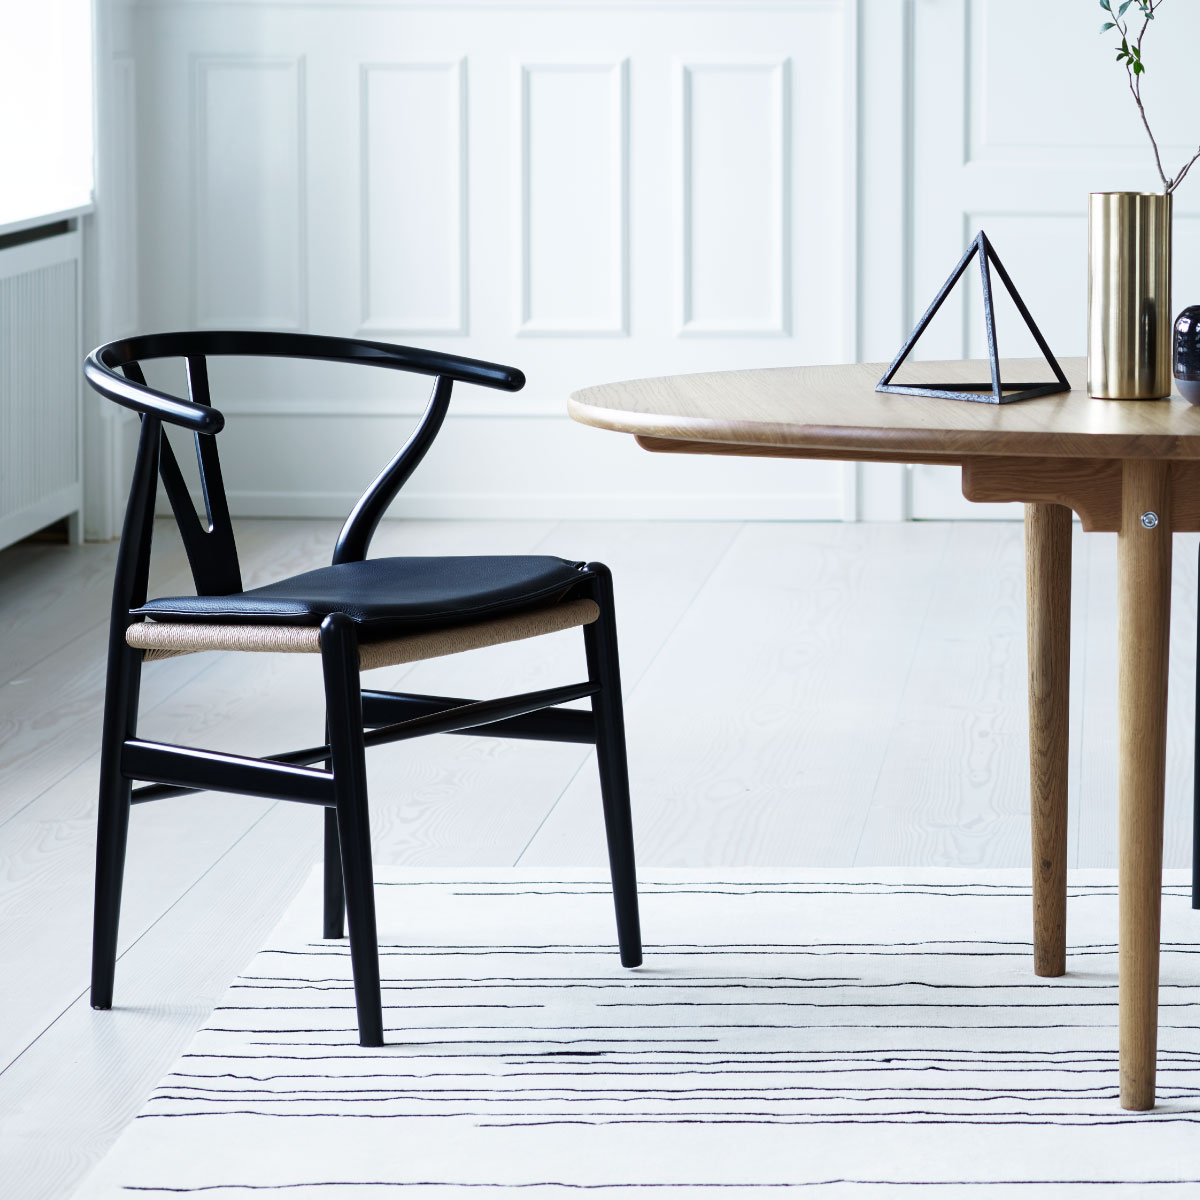 Merveilleux ... CH24 Wishbone Chair, Black Oak, Black Paper Cord Seat ...